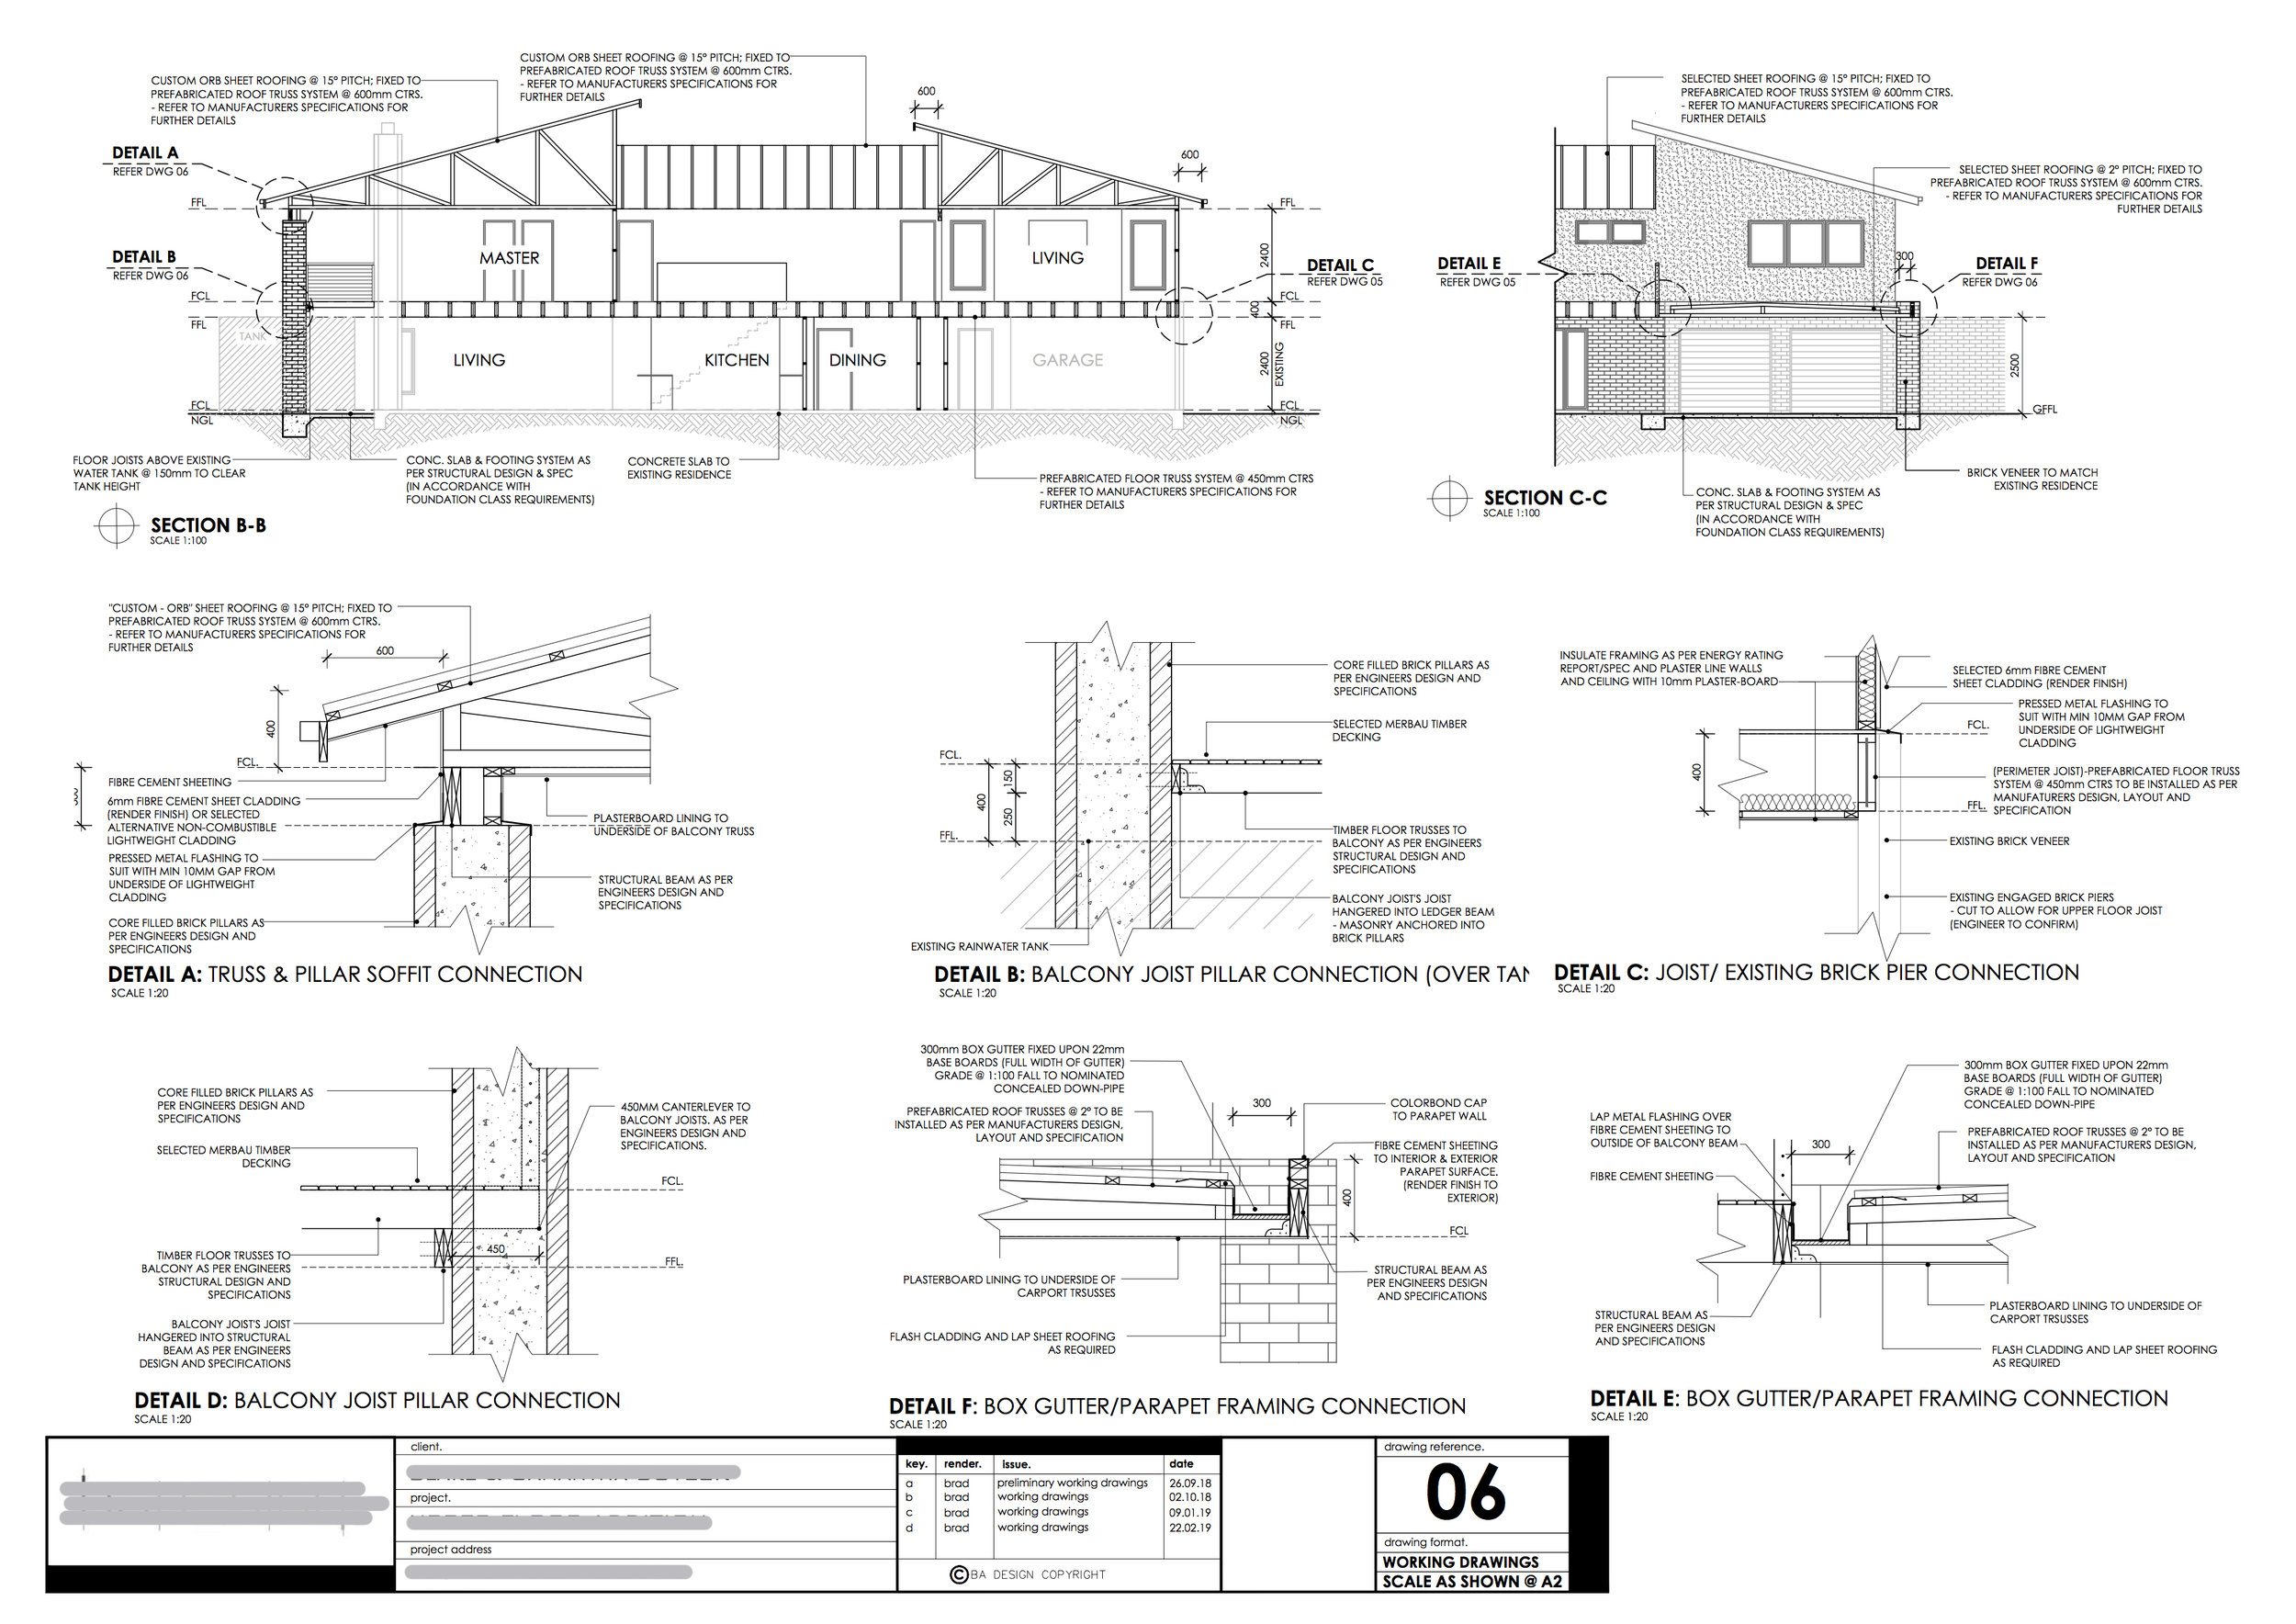 Construction Drawings Example - Showing Construction Specifications and Details.